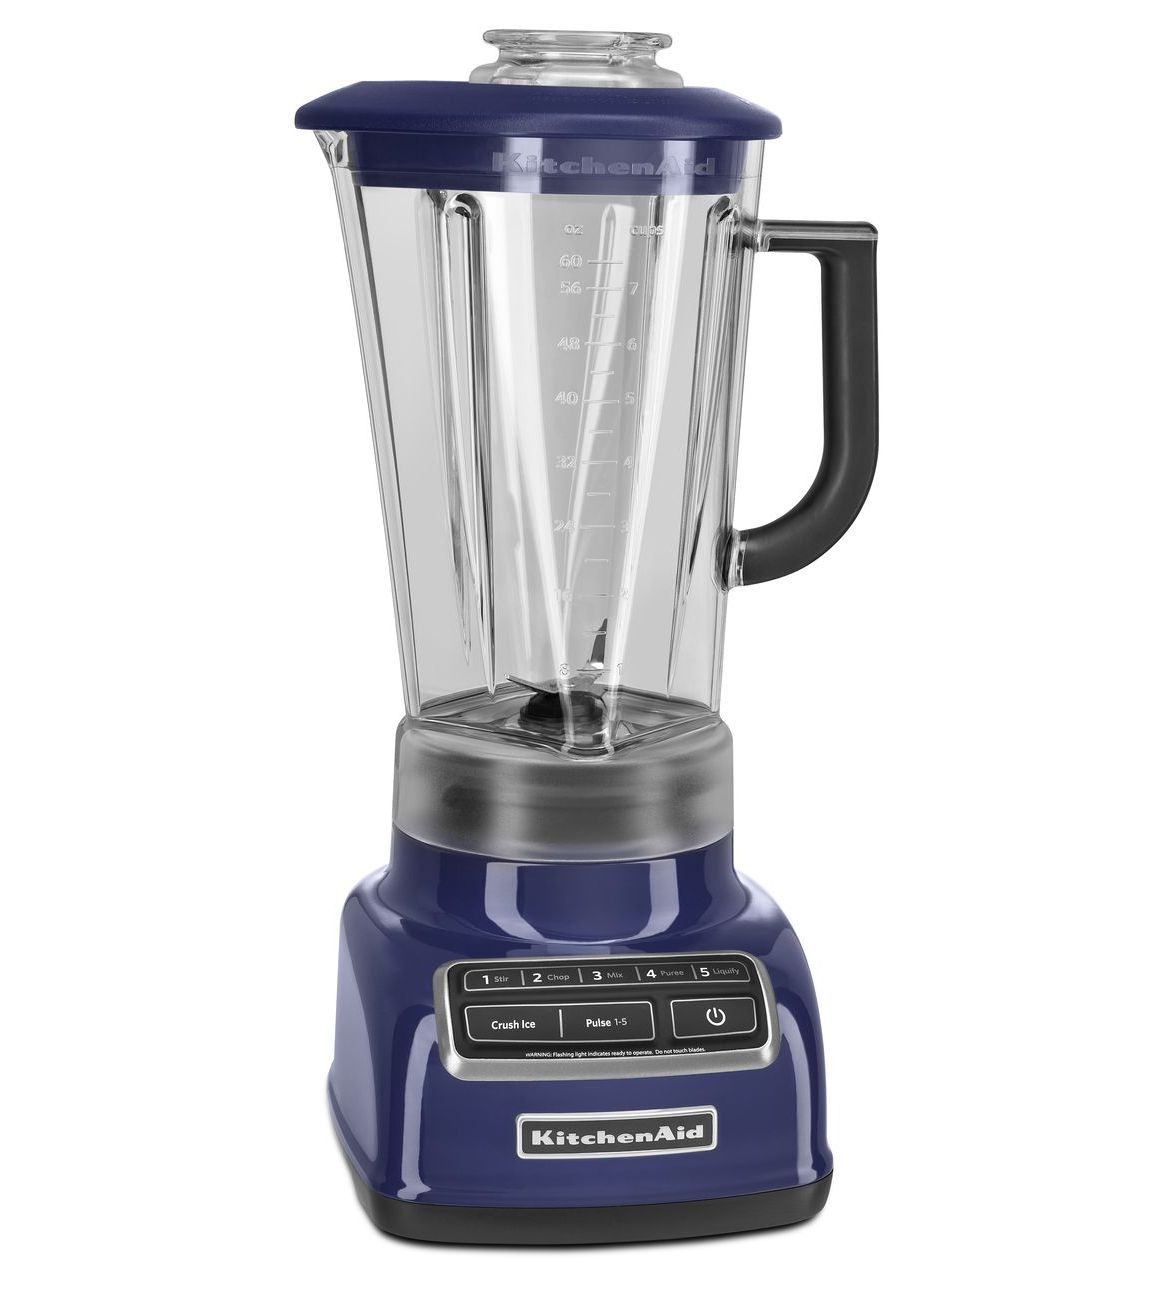 Kitchenaid Cobalt Blue 5 Speed Diamond Blender Master